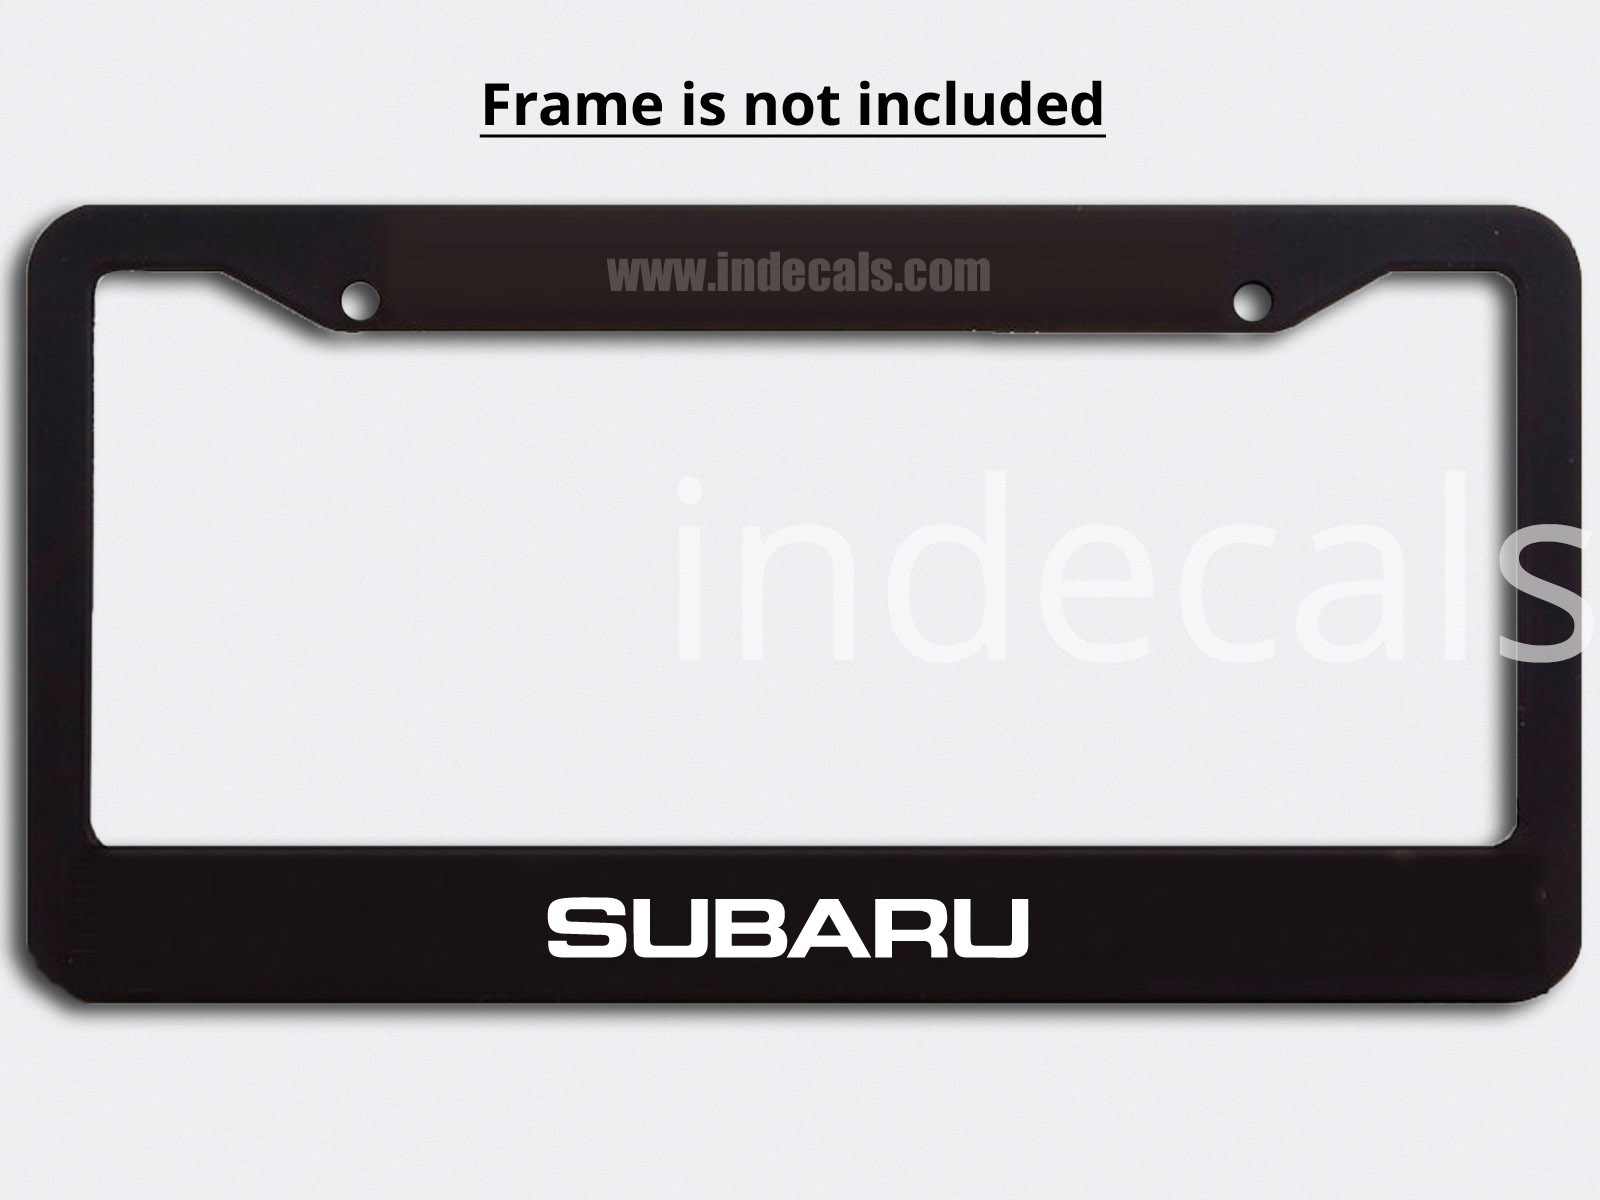 3 x Subaru Stickers for Plate Frame - White